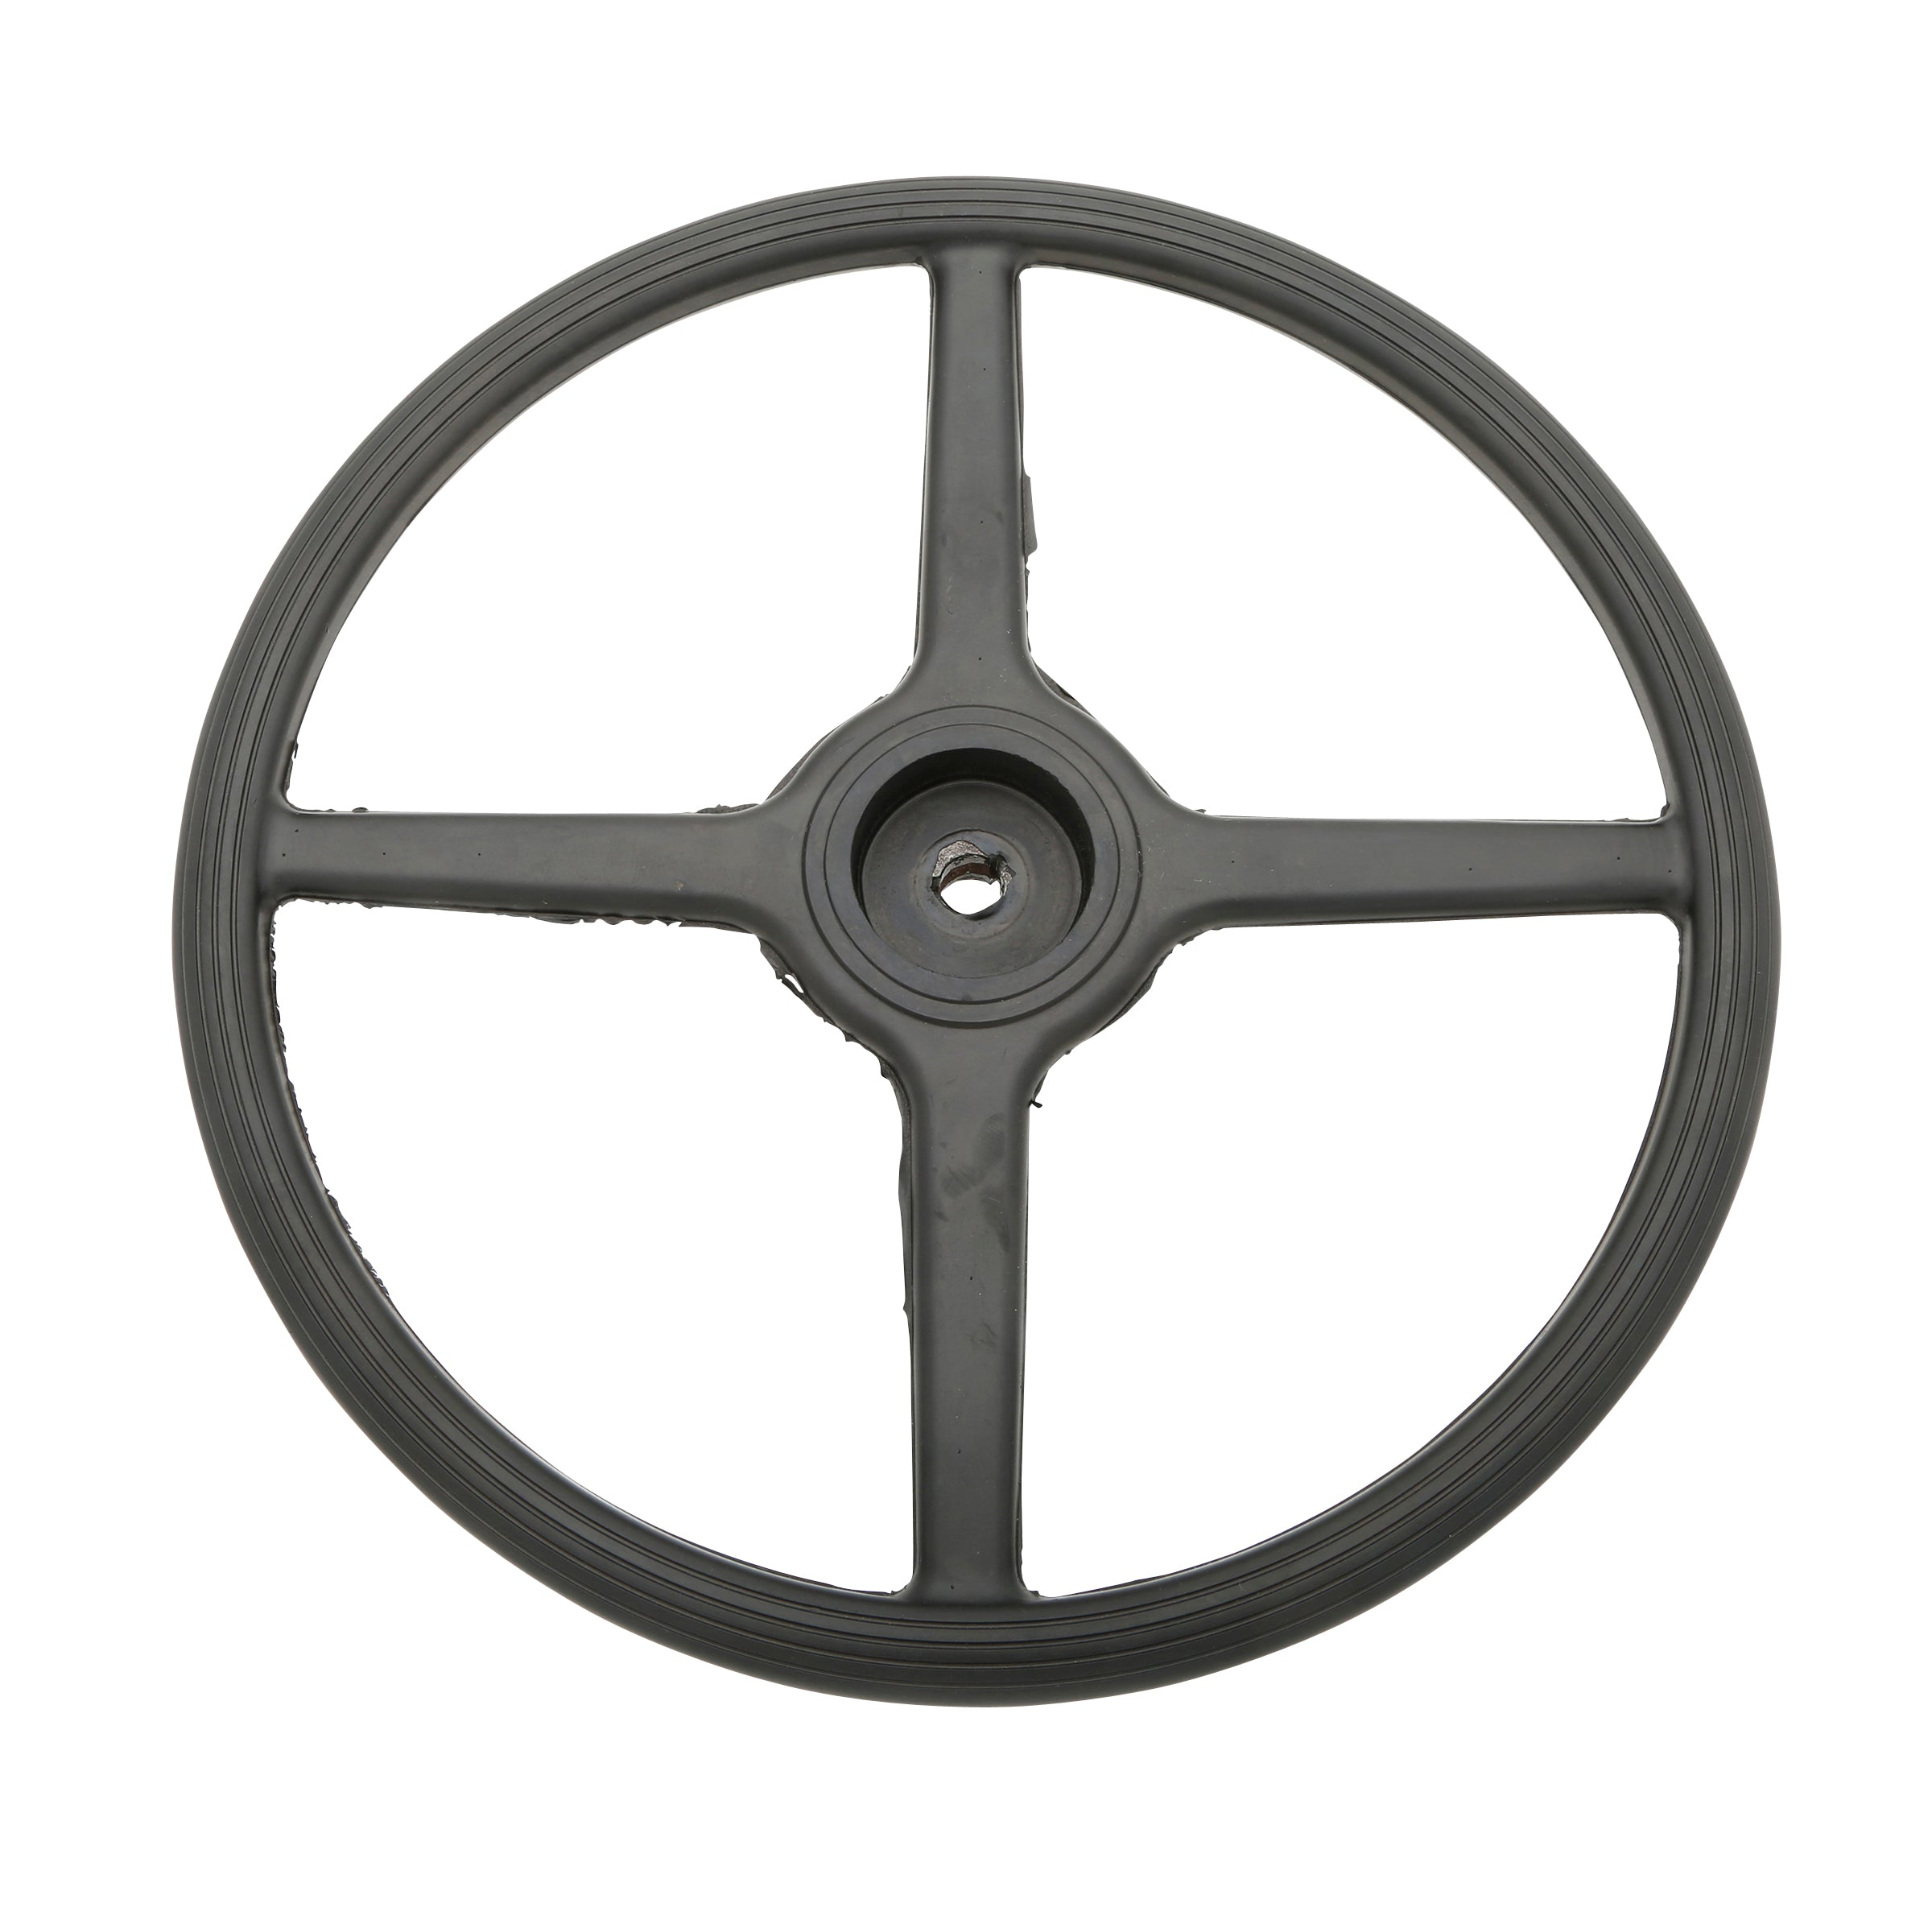 Steering Wheel • 1930-31 Model A Ford